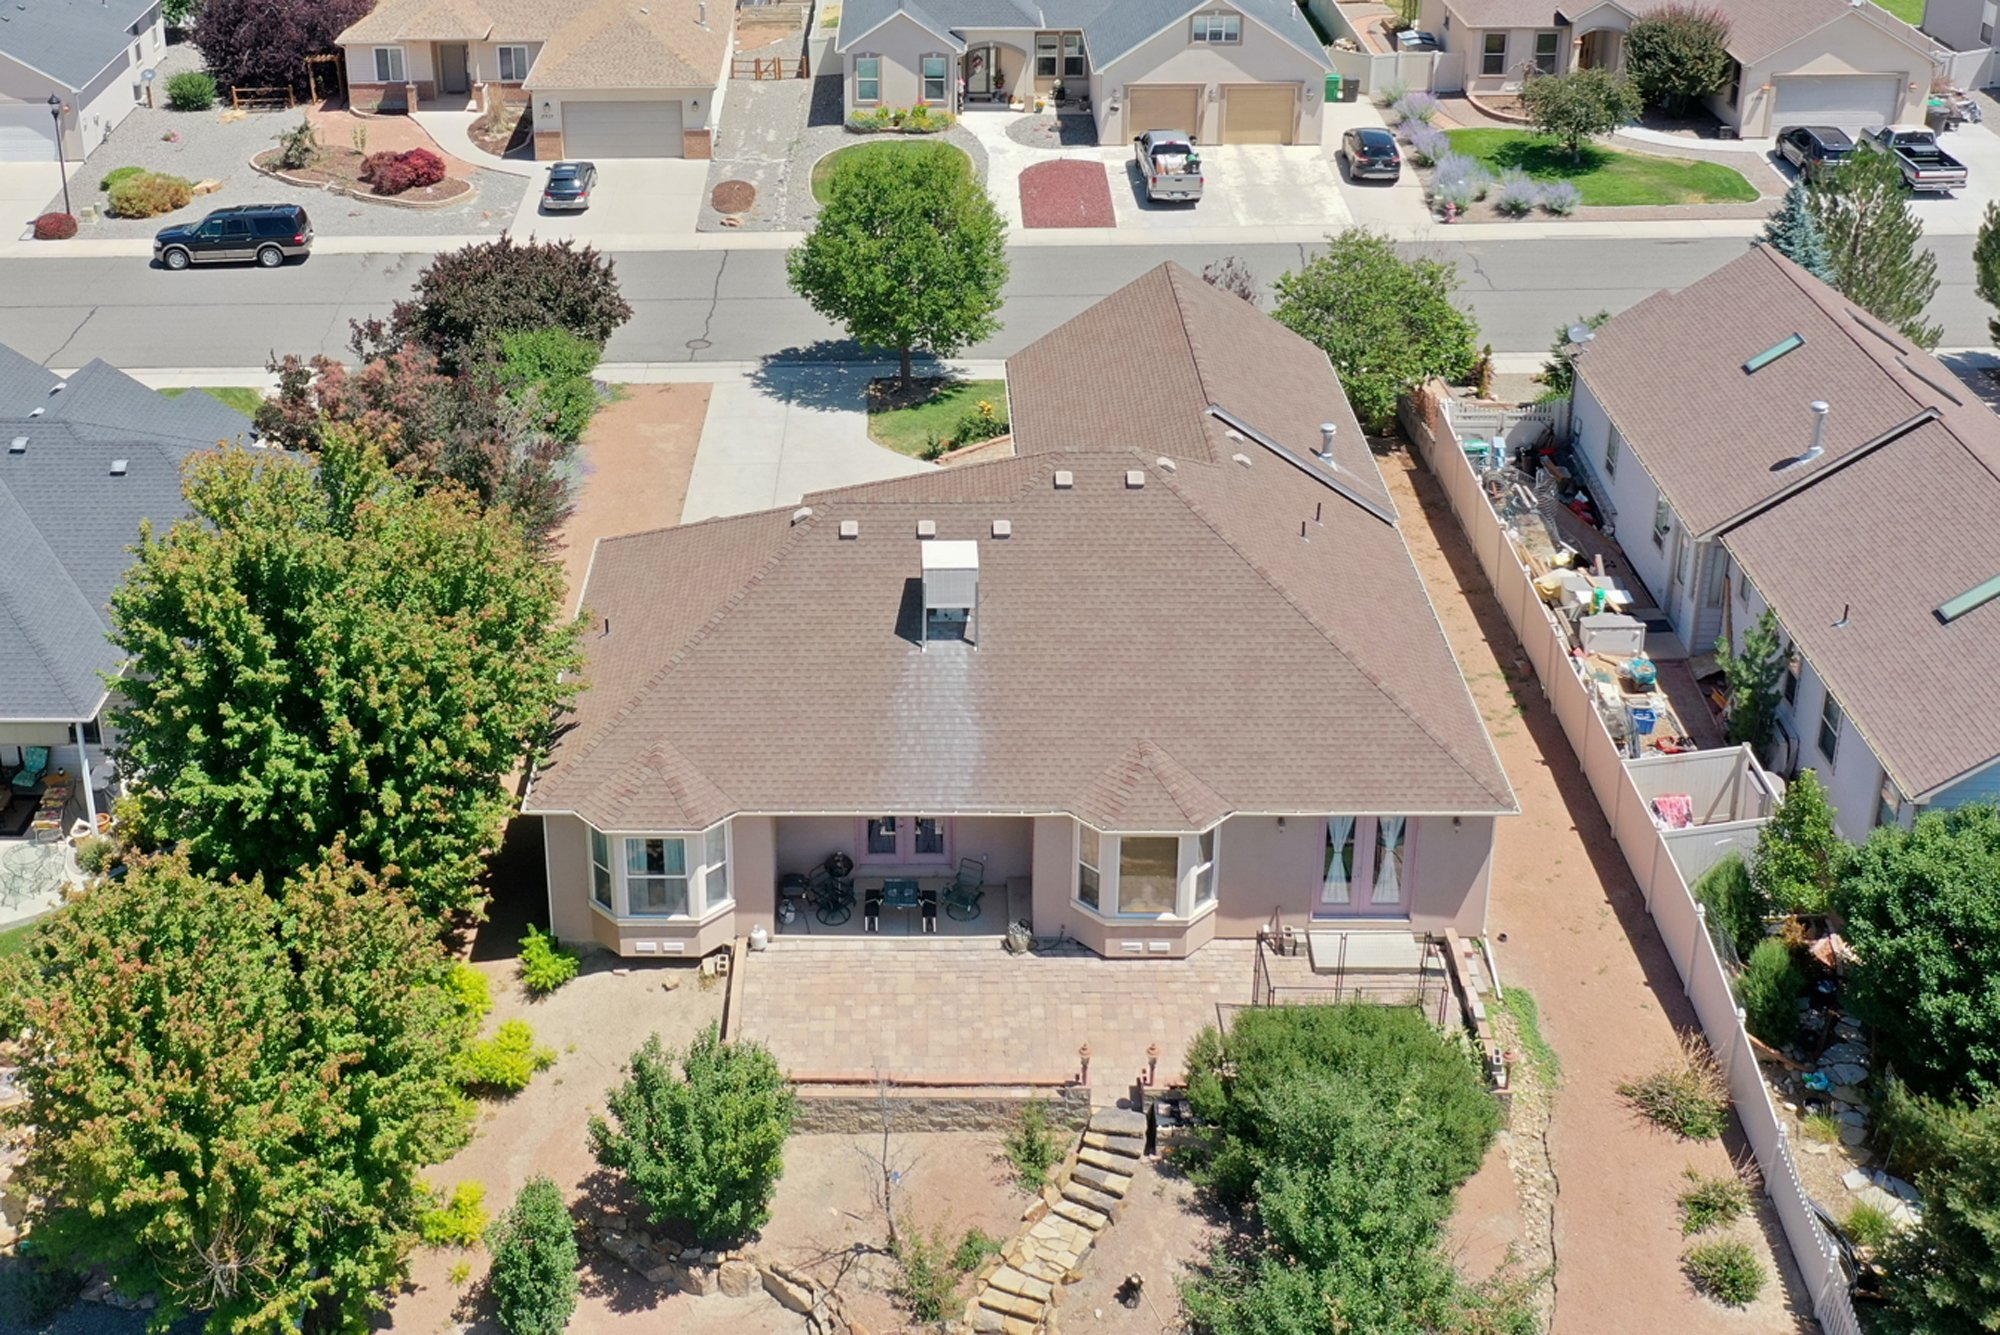 Back Patio Aerial View - 2924 Lost Creek Rd S. Montrose, CO 81401 - Atha Team Real Estate Agents